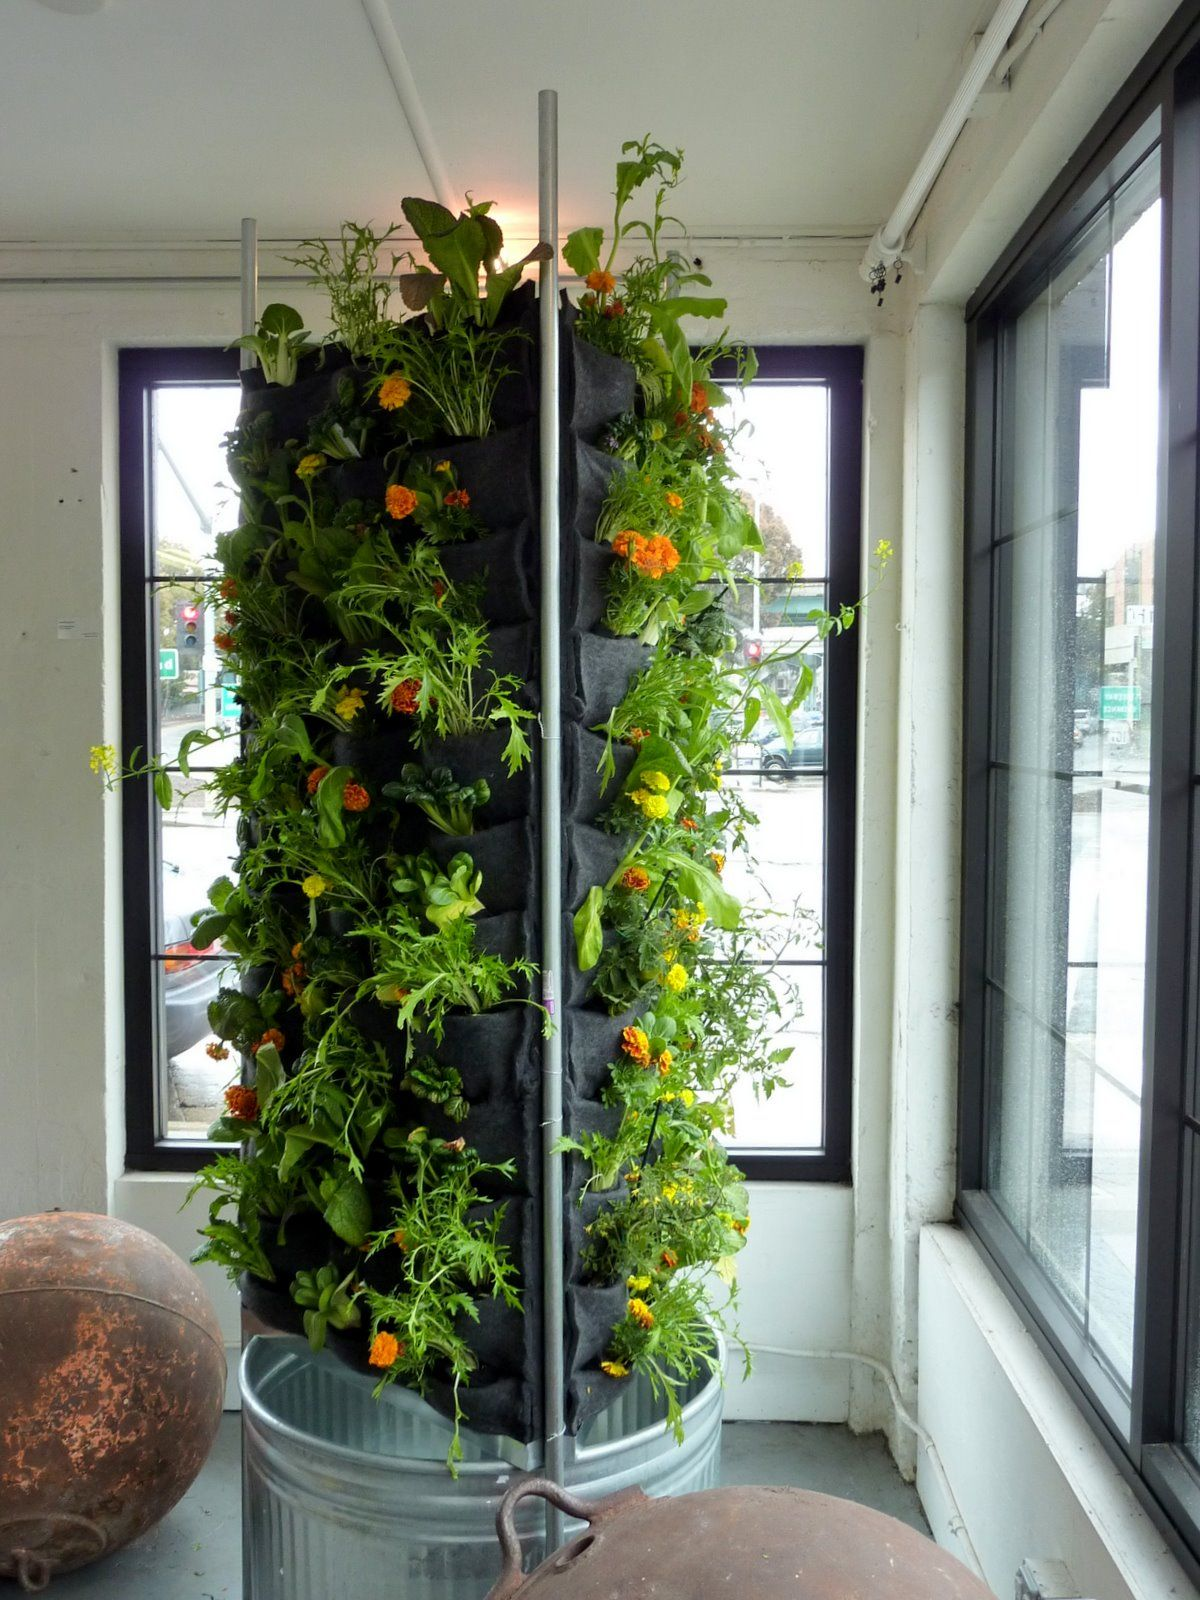 Indoor Vegetable Garden Ideas indoor garden indoor vegetable garden ideas garden collection idea for your home Find This Pin And More On Gardening Ideas